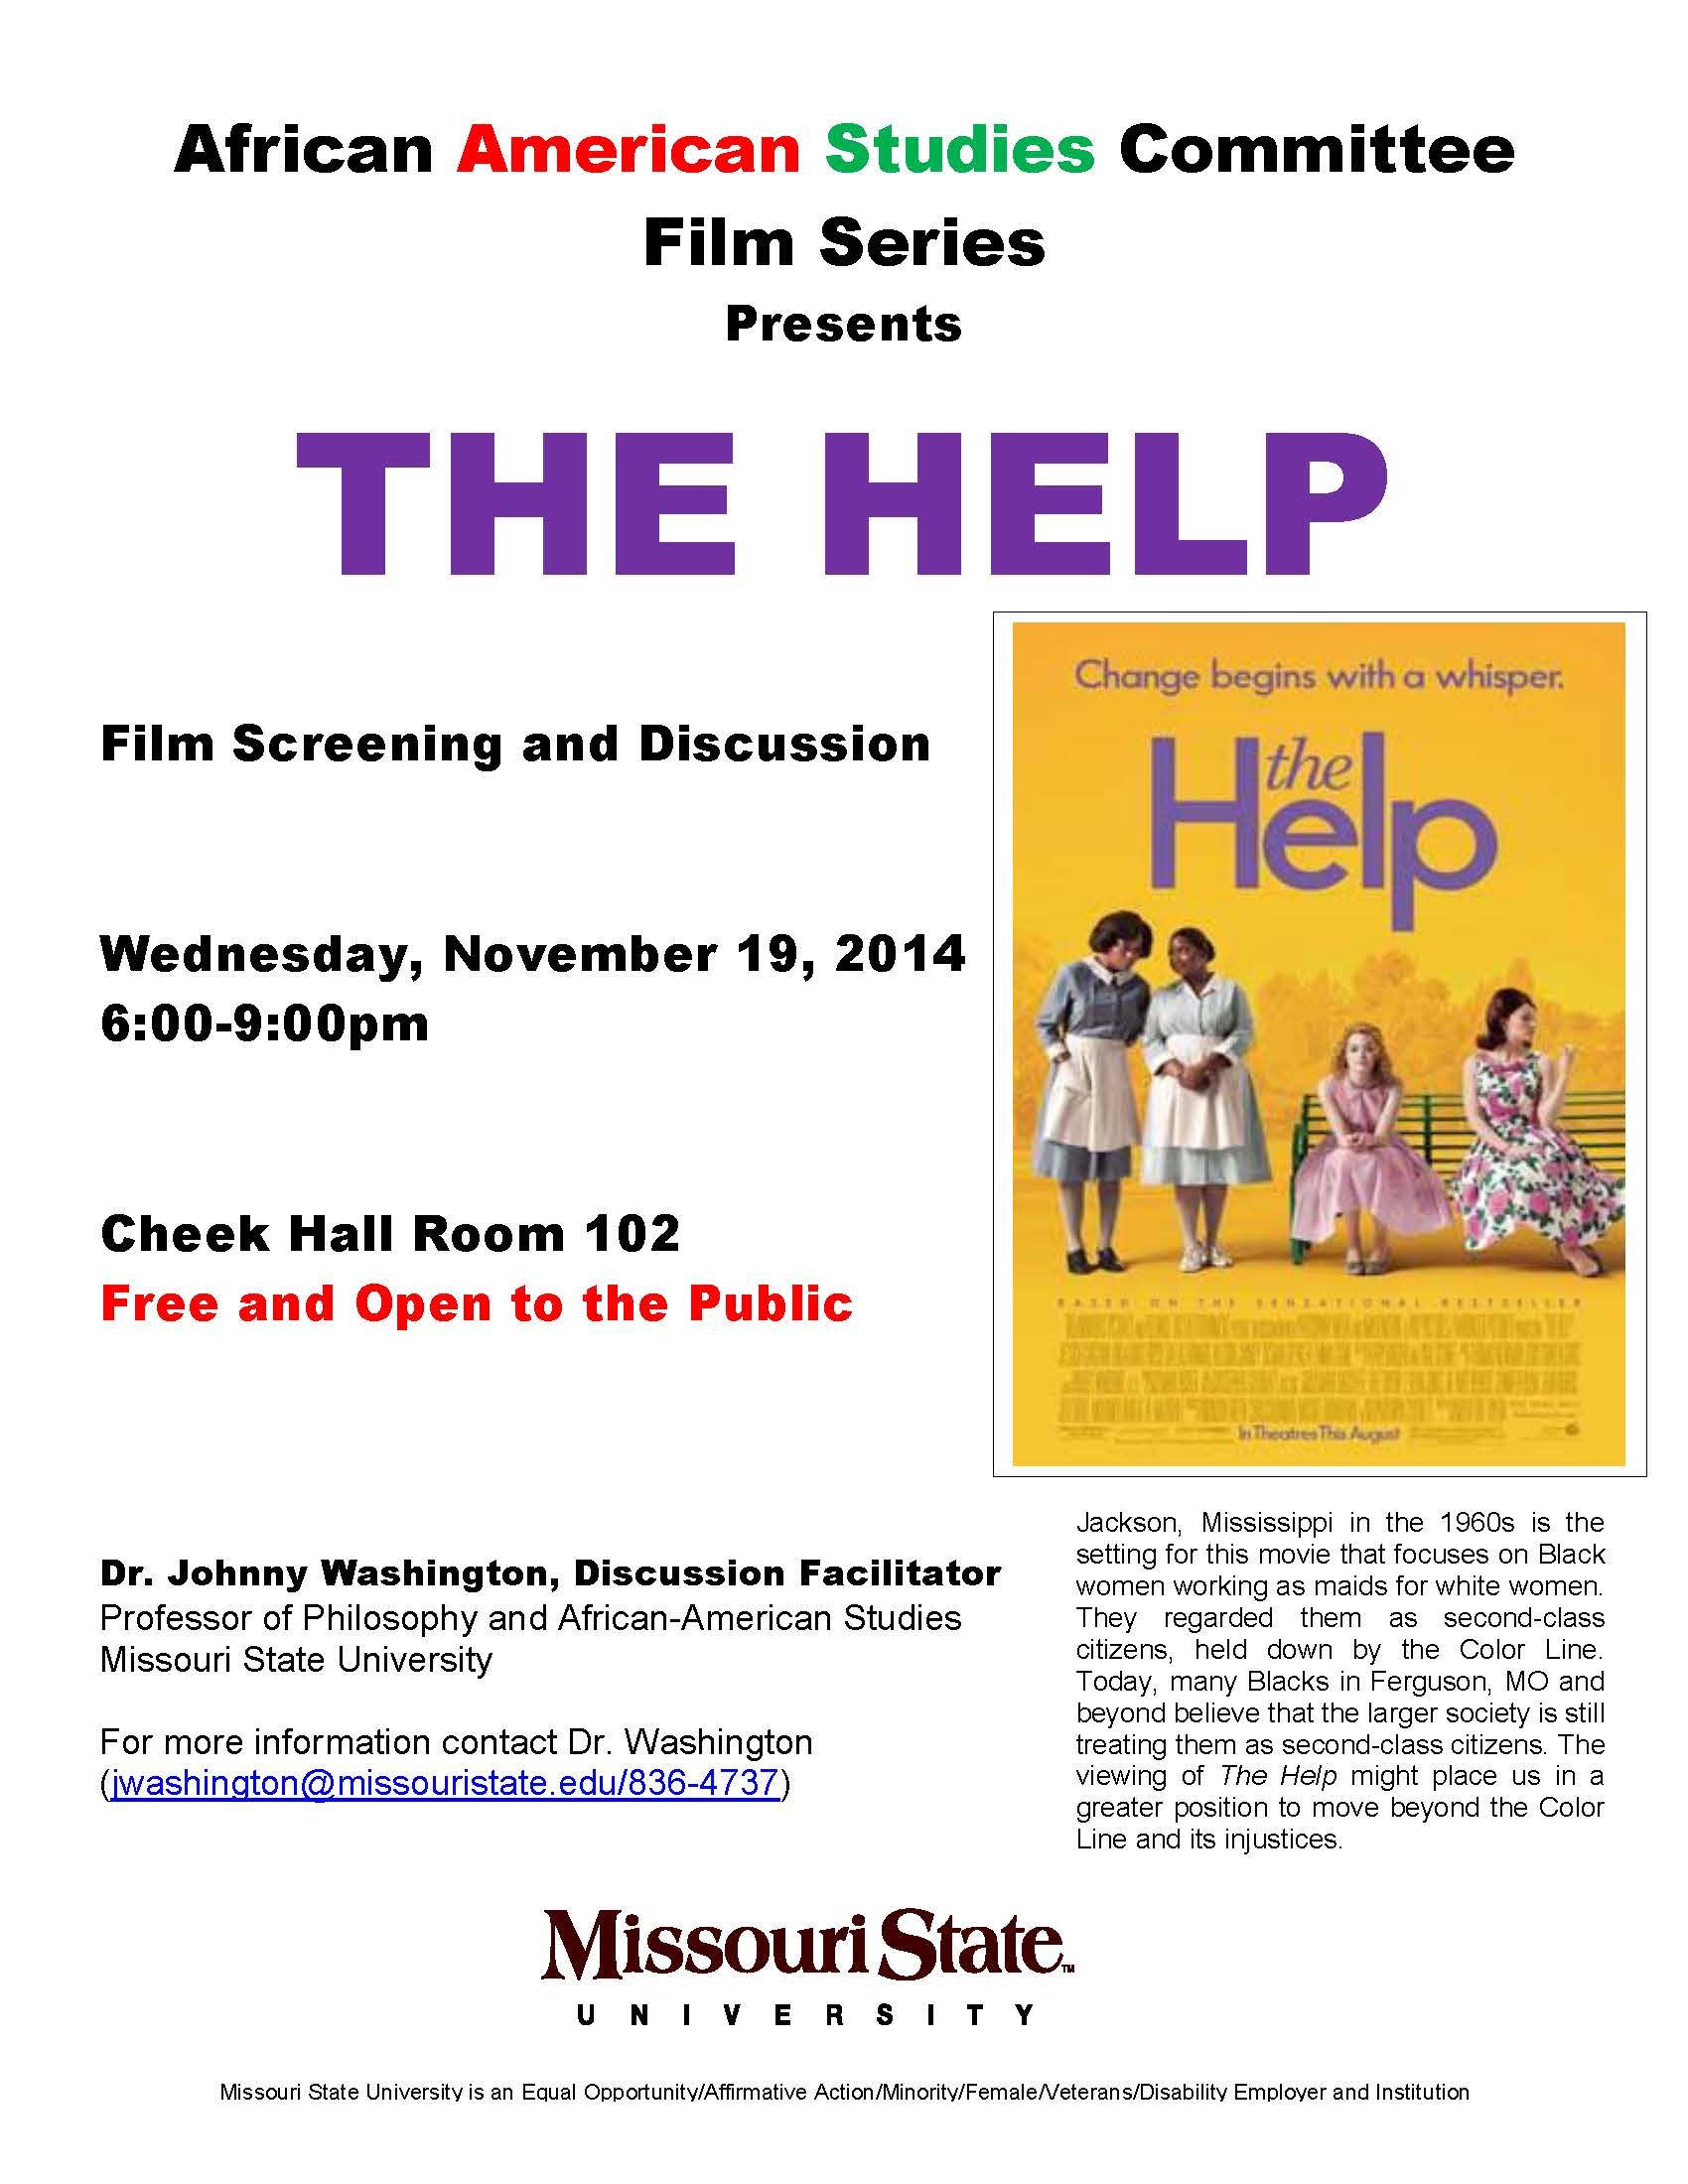 African American Studies Committee Film Series: The Help